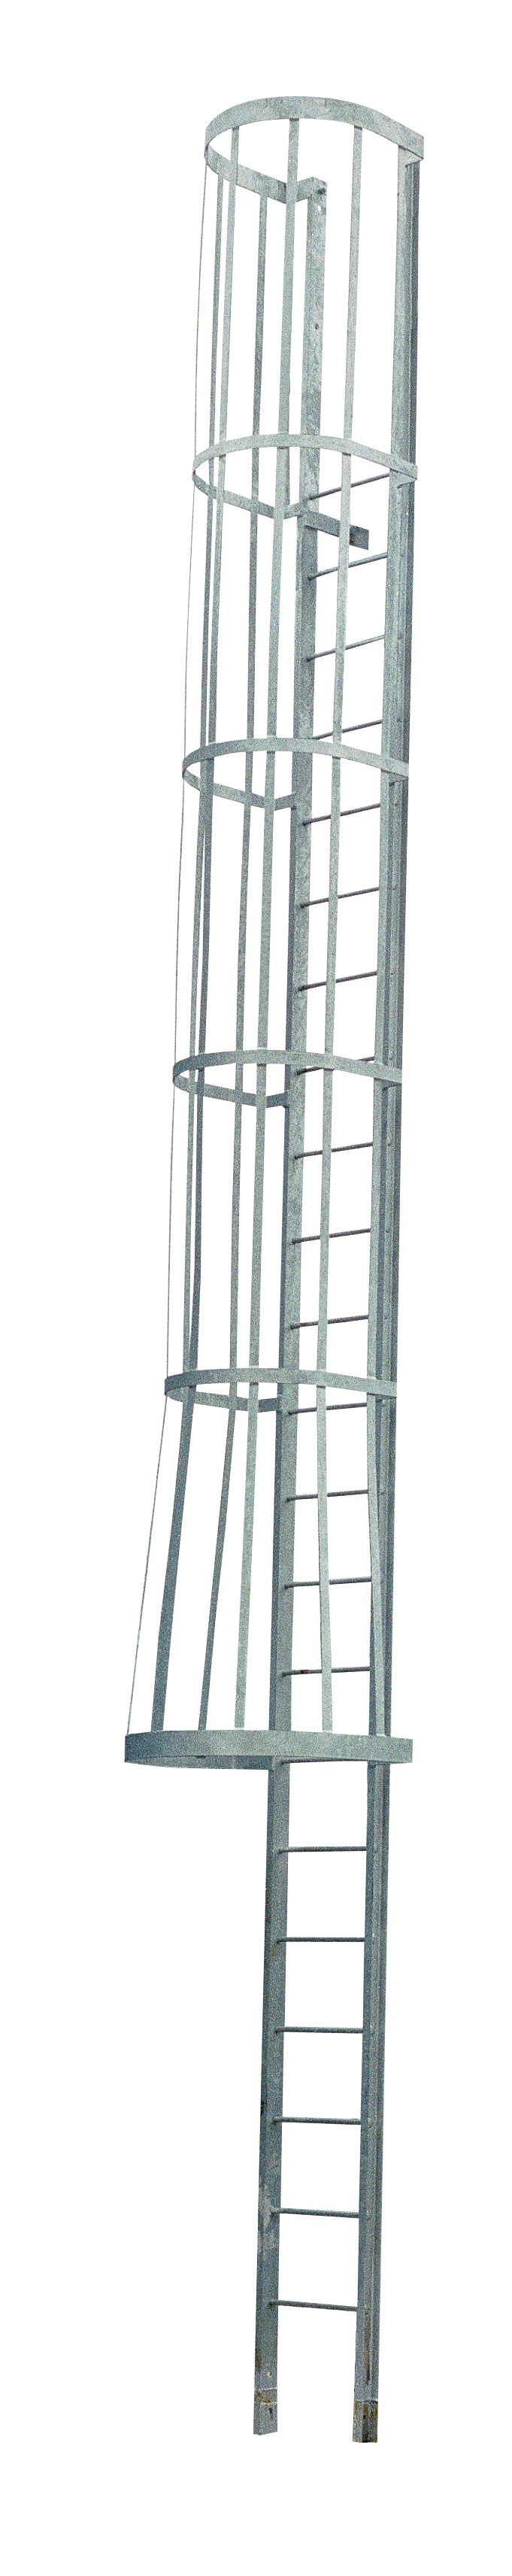 Calico Ladder Fmcw Series Unpainted Permanent Vertical